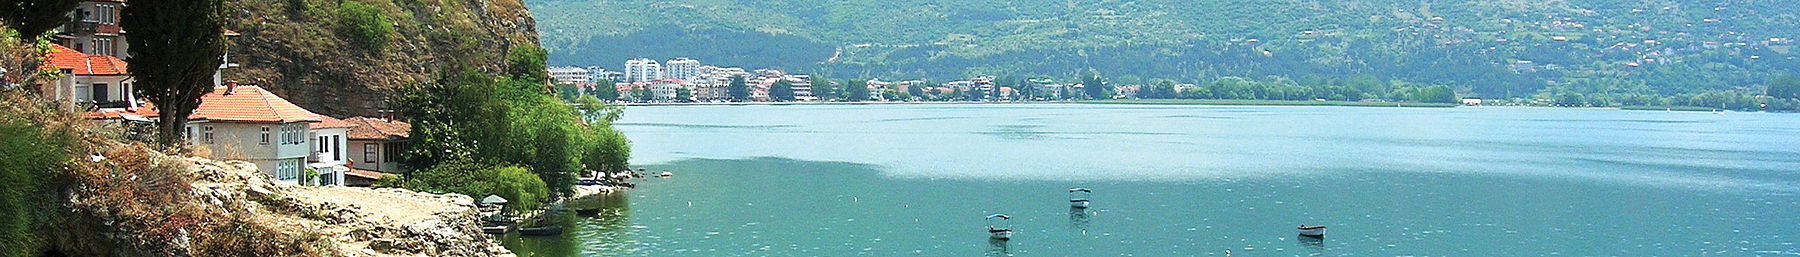 Lake Ohrid as seen from Kaneo, a suburb of Ohrid